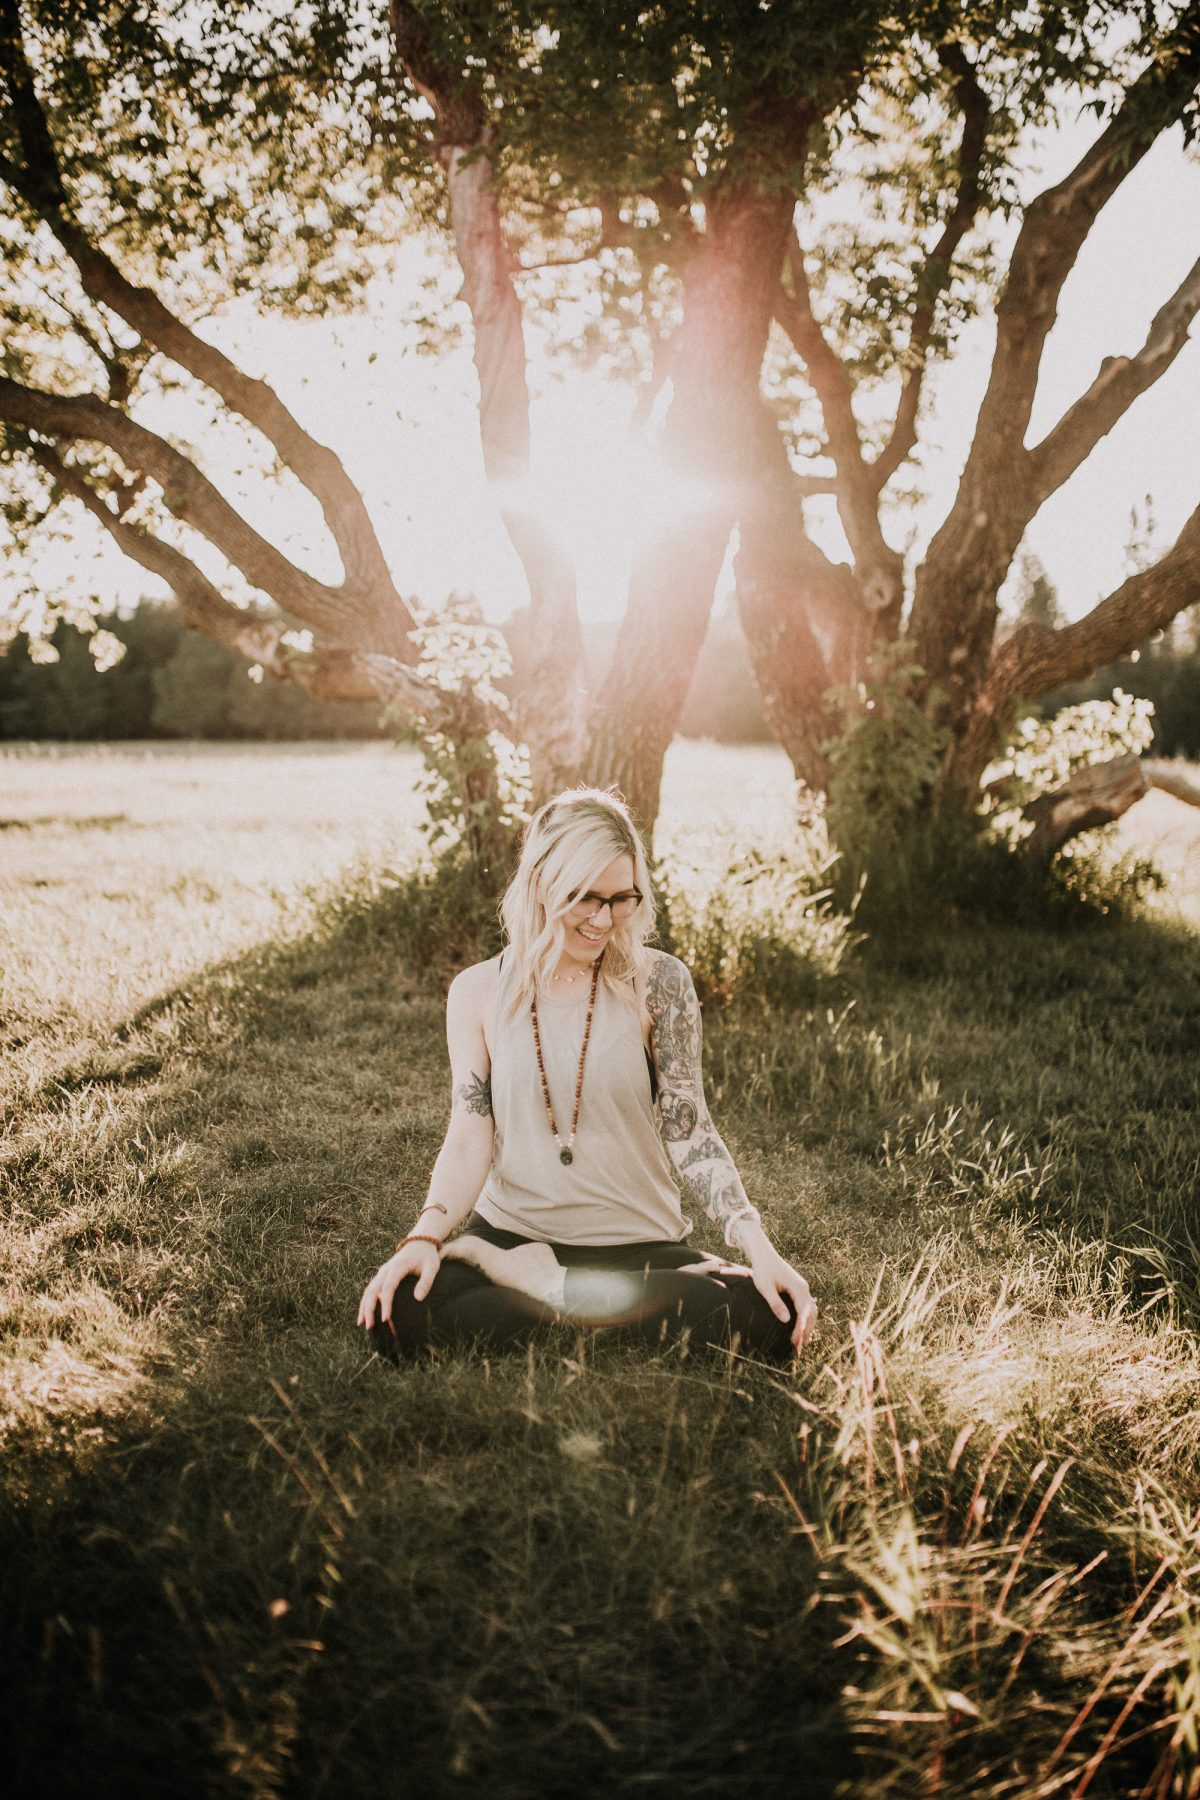 Woman sitting in yoga pose at sunset outside